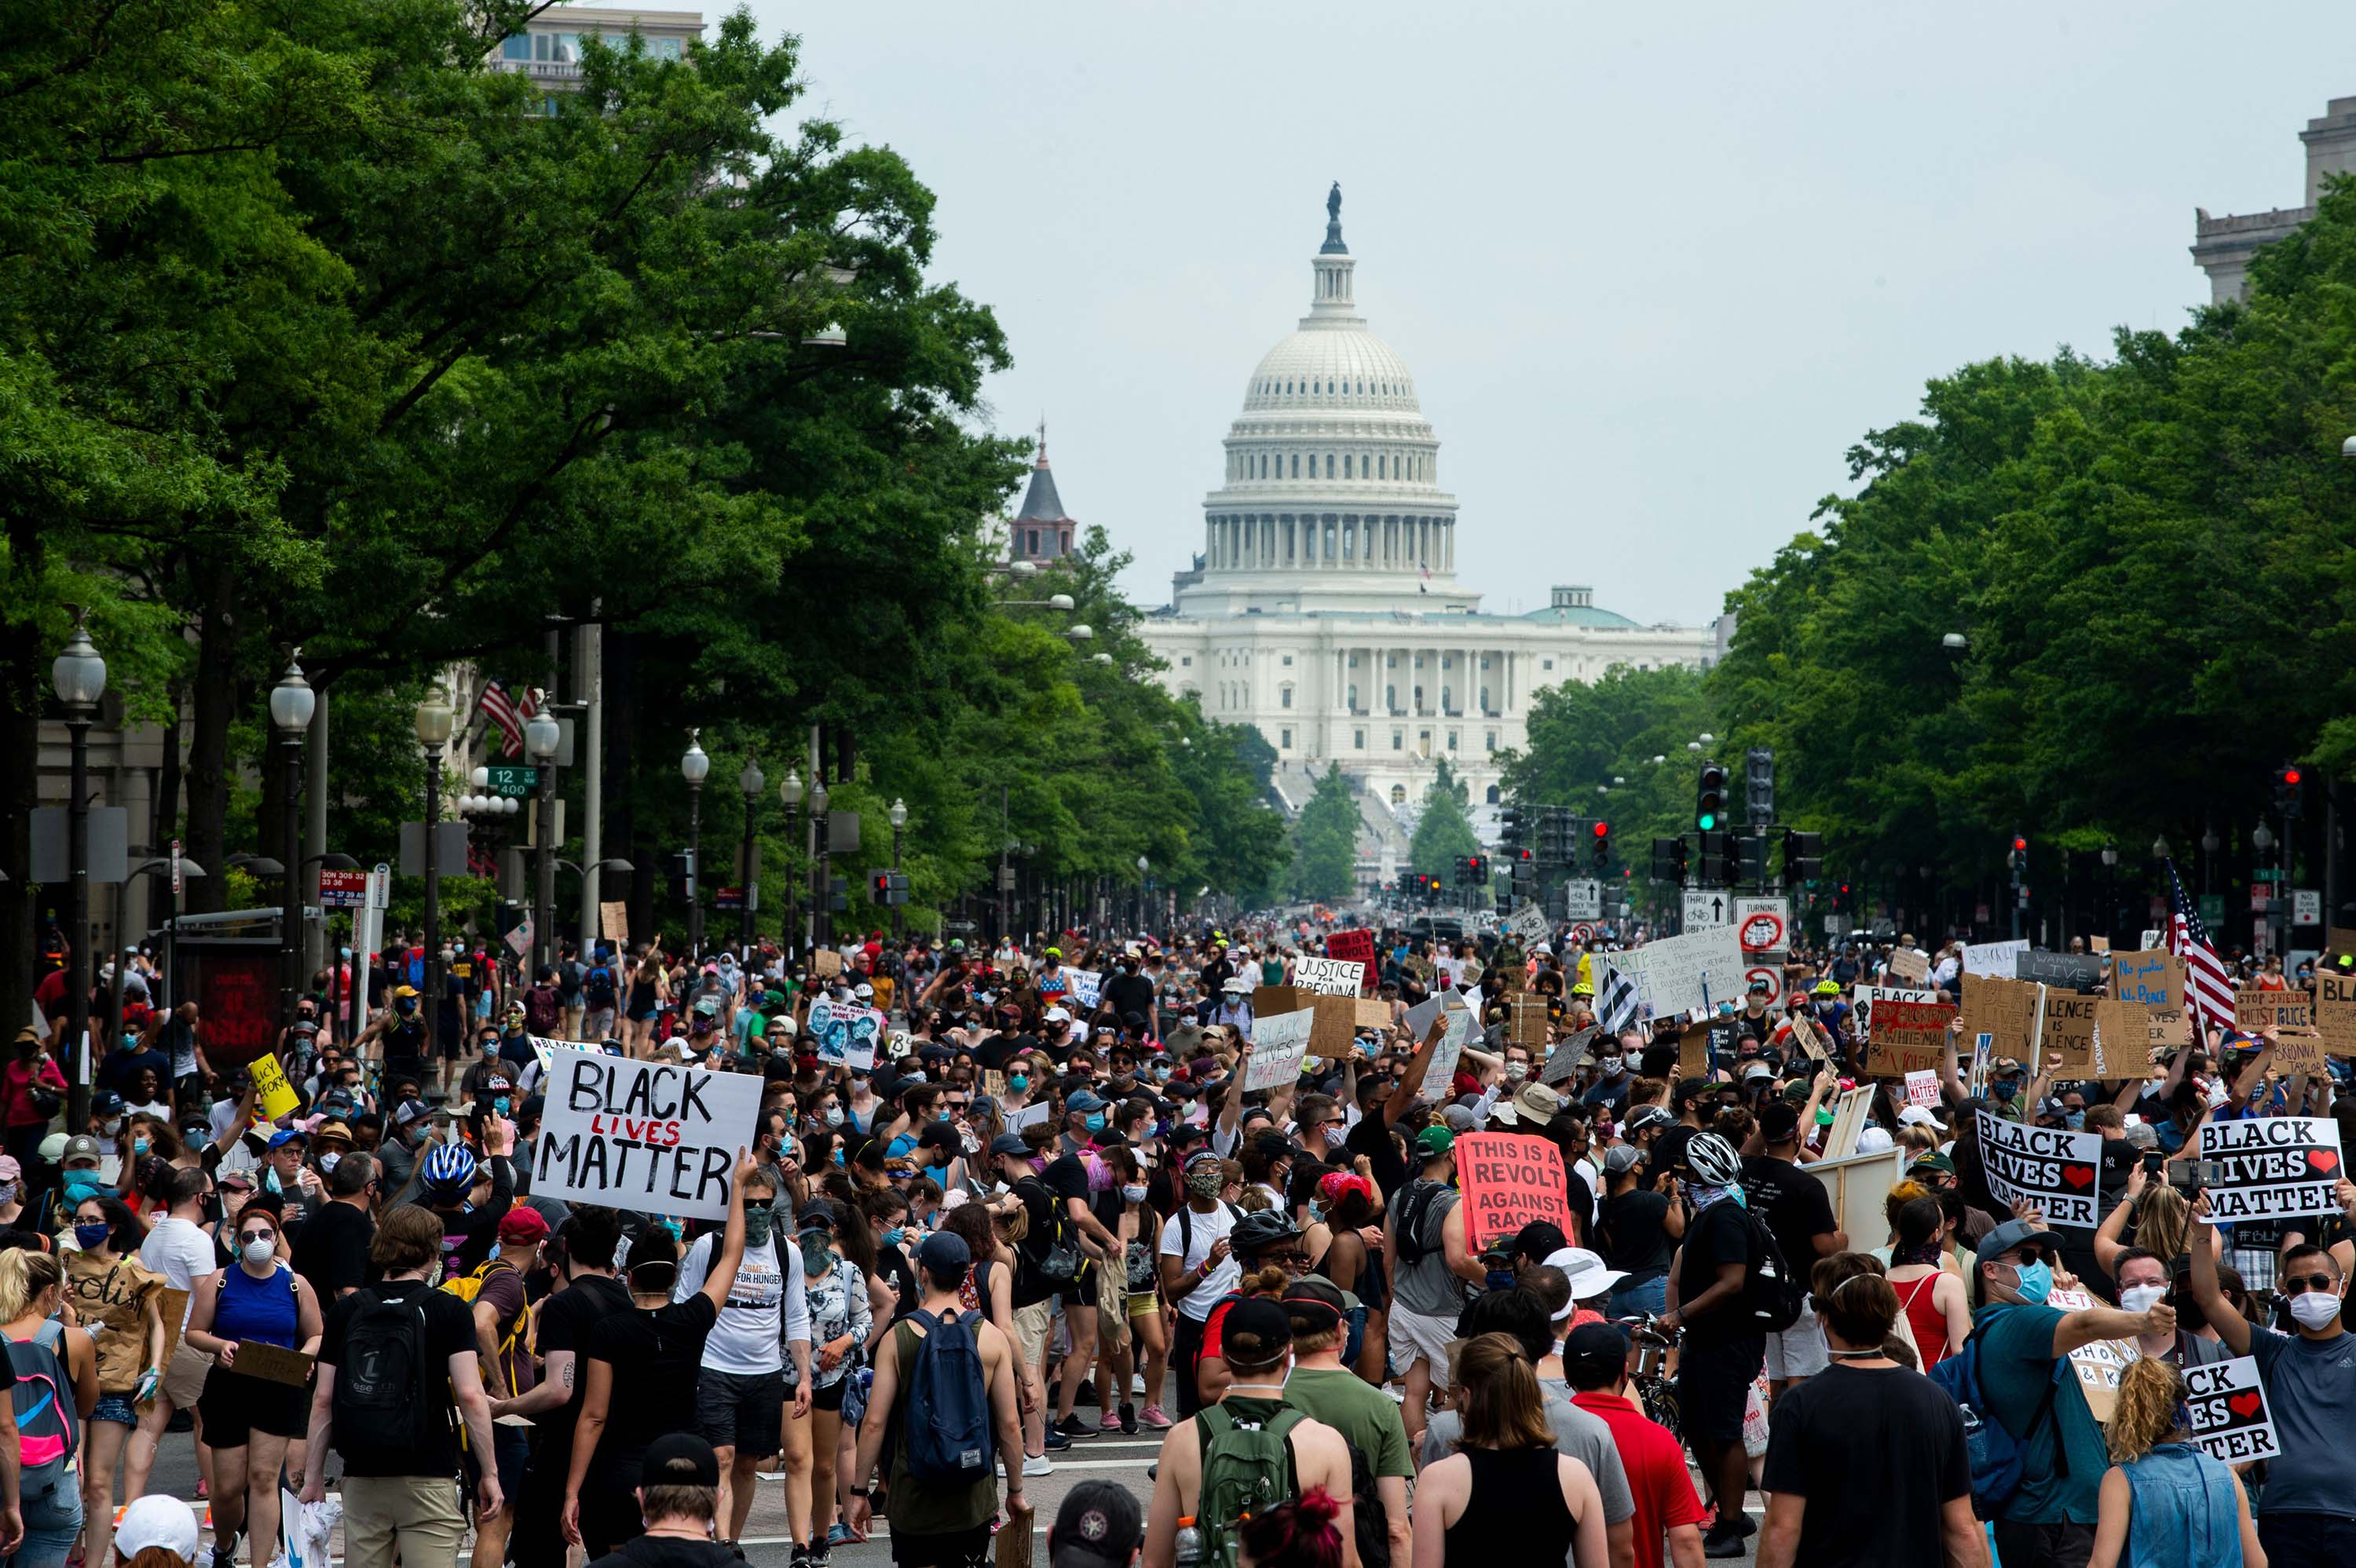 A crowd of protesters walk from the Capitol building to the White House during a protest against police brutality and racism, on June 6, in Washington, DC.